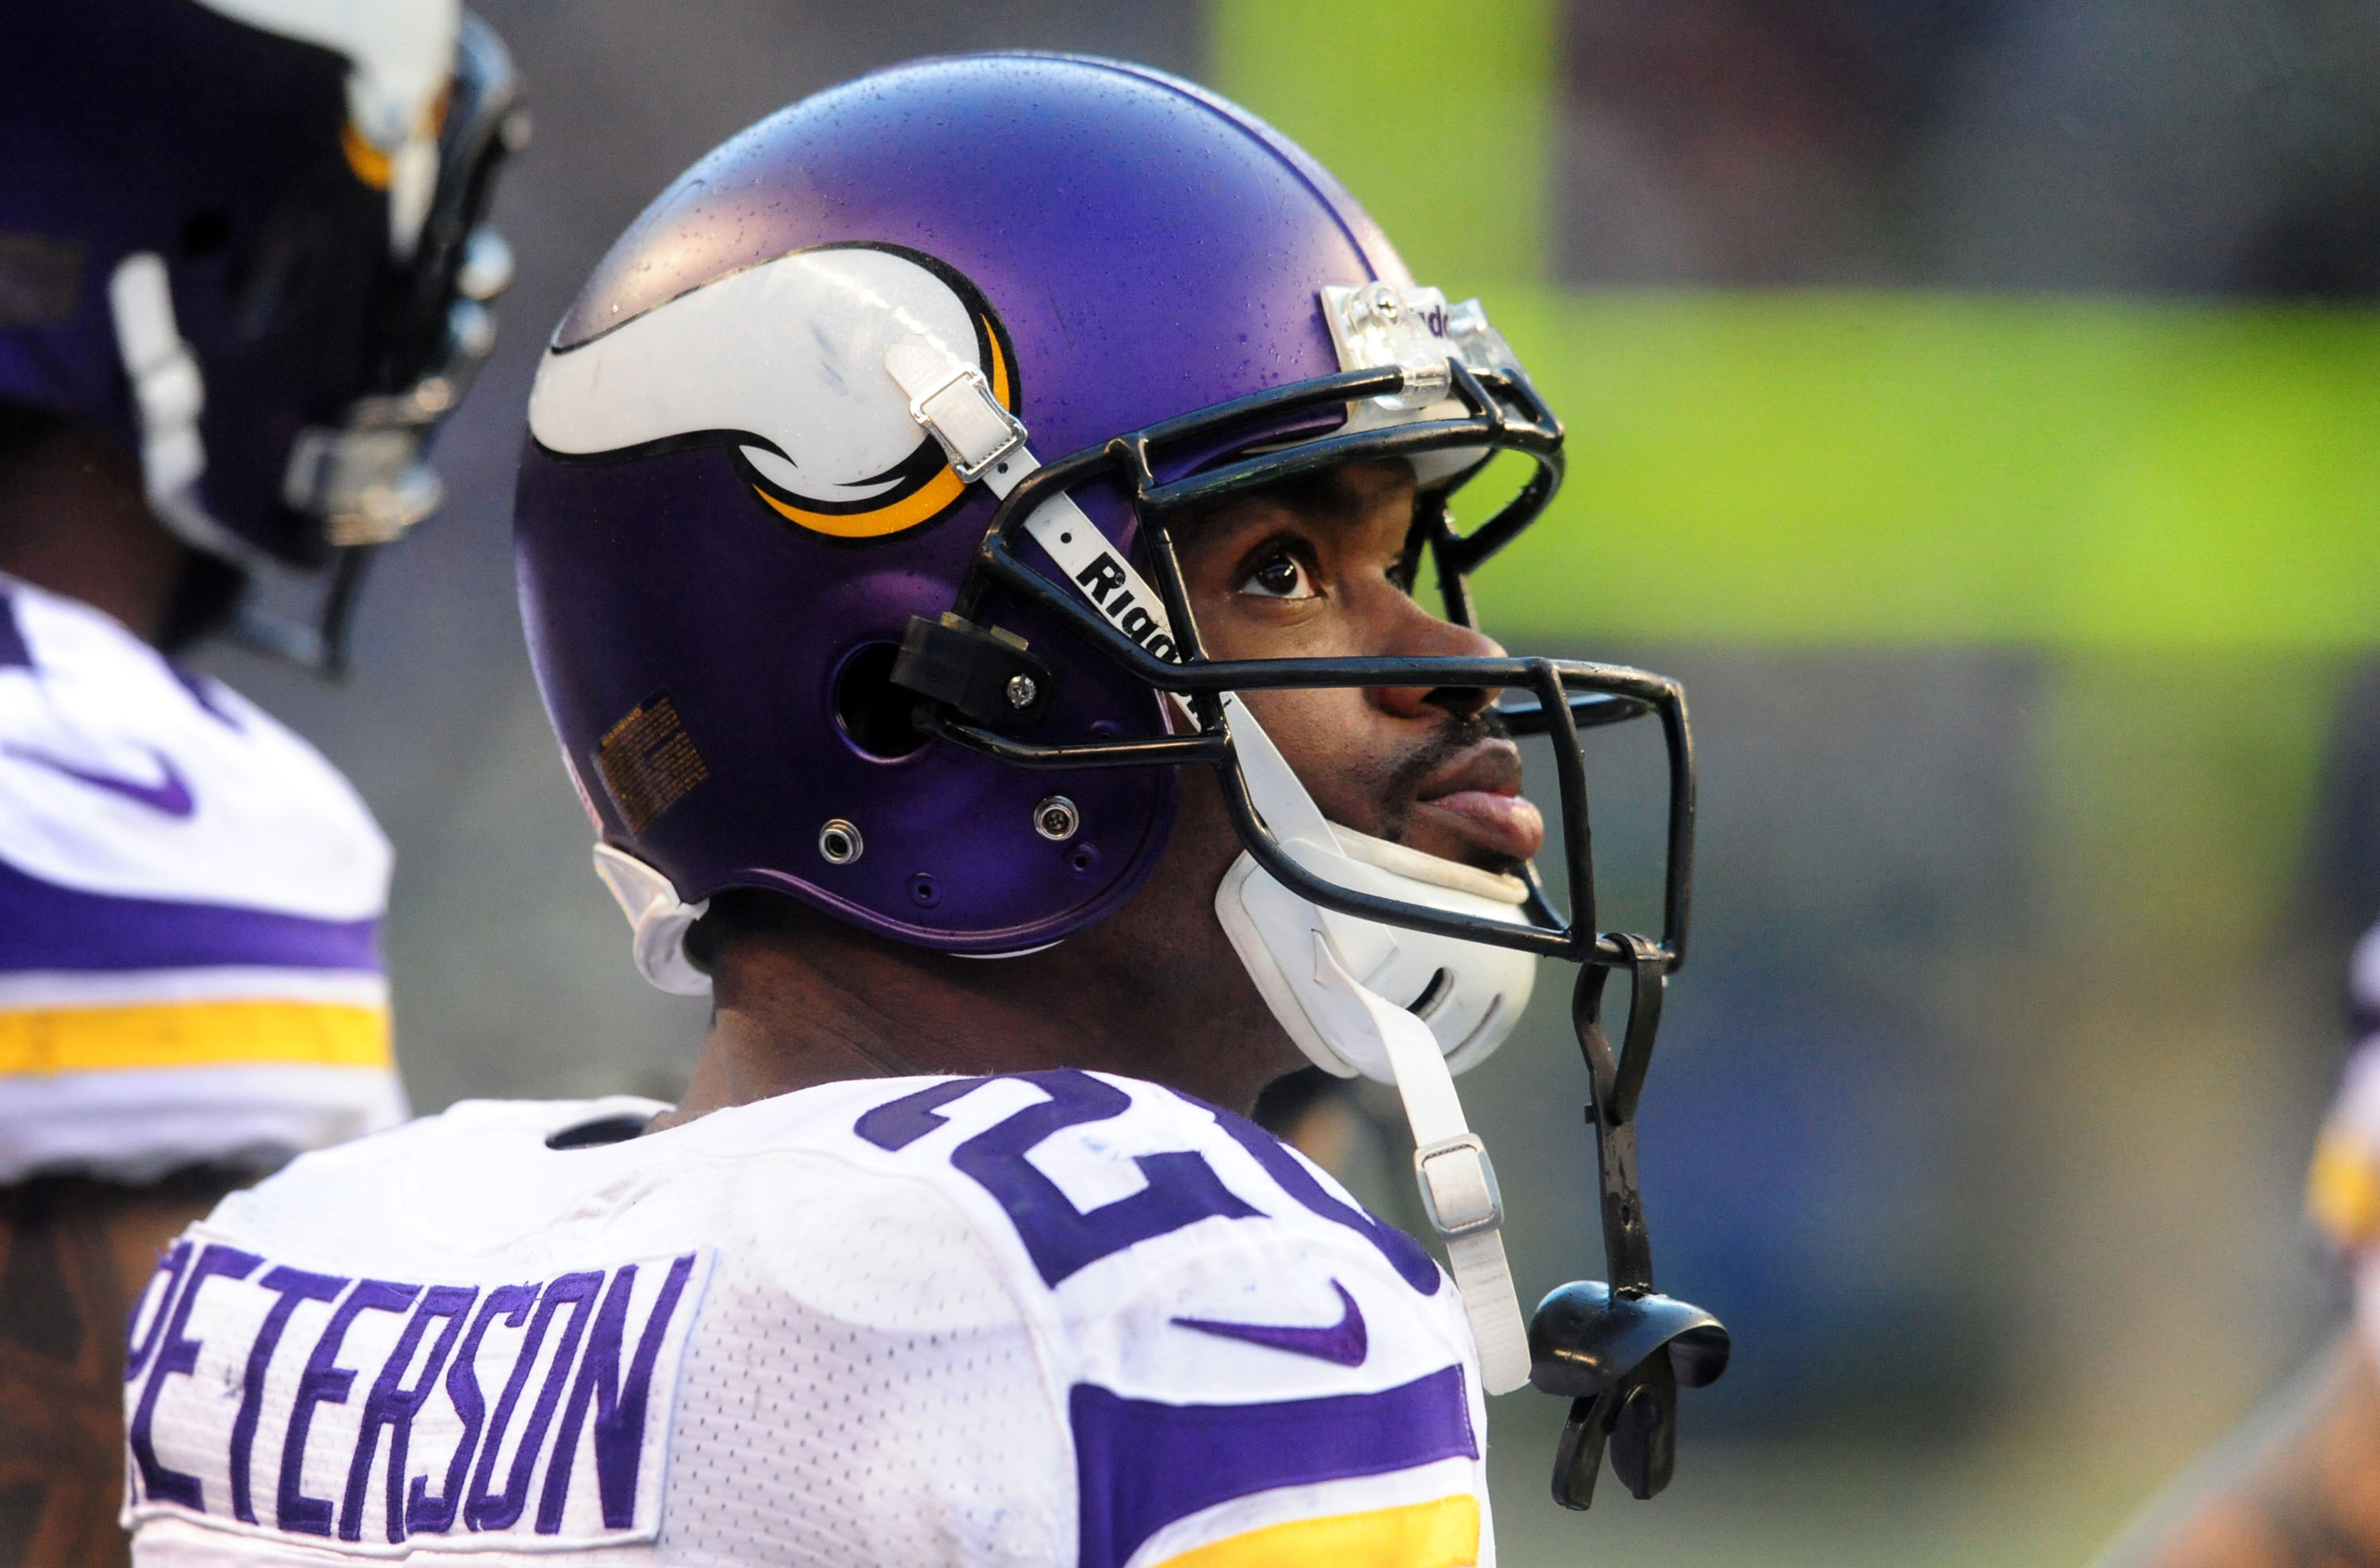 There are at least six more games of Adrian Peterson's prime to waste before the Vikings have a chance at competing.